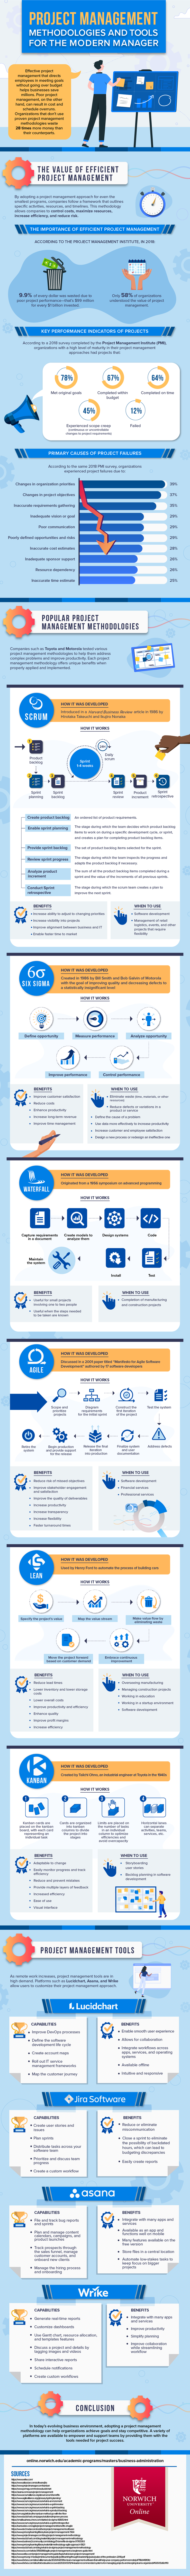 project management methodologies and tools infographic image